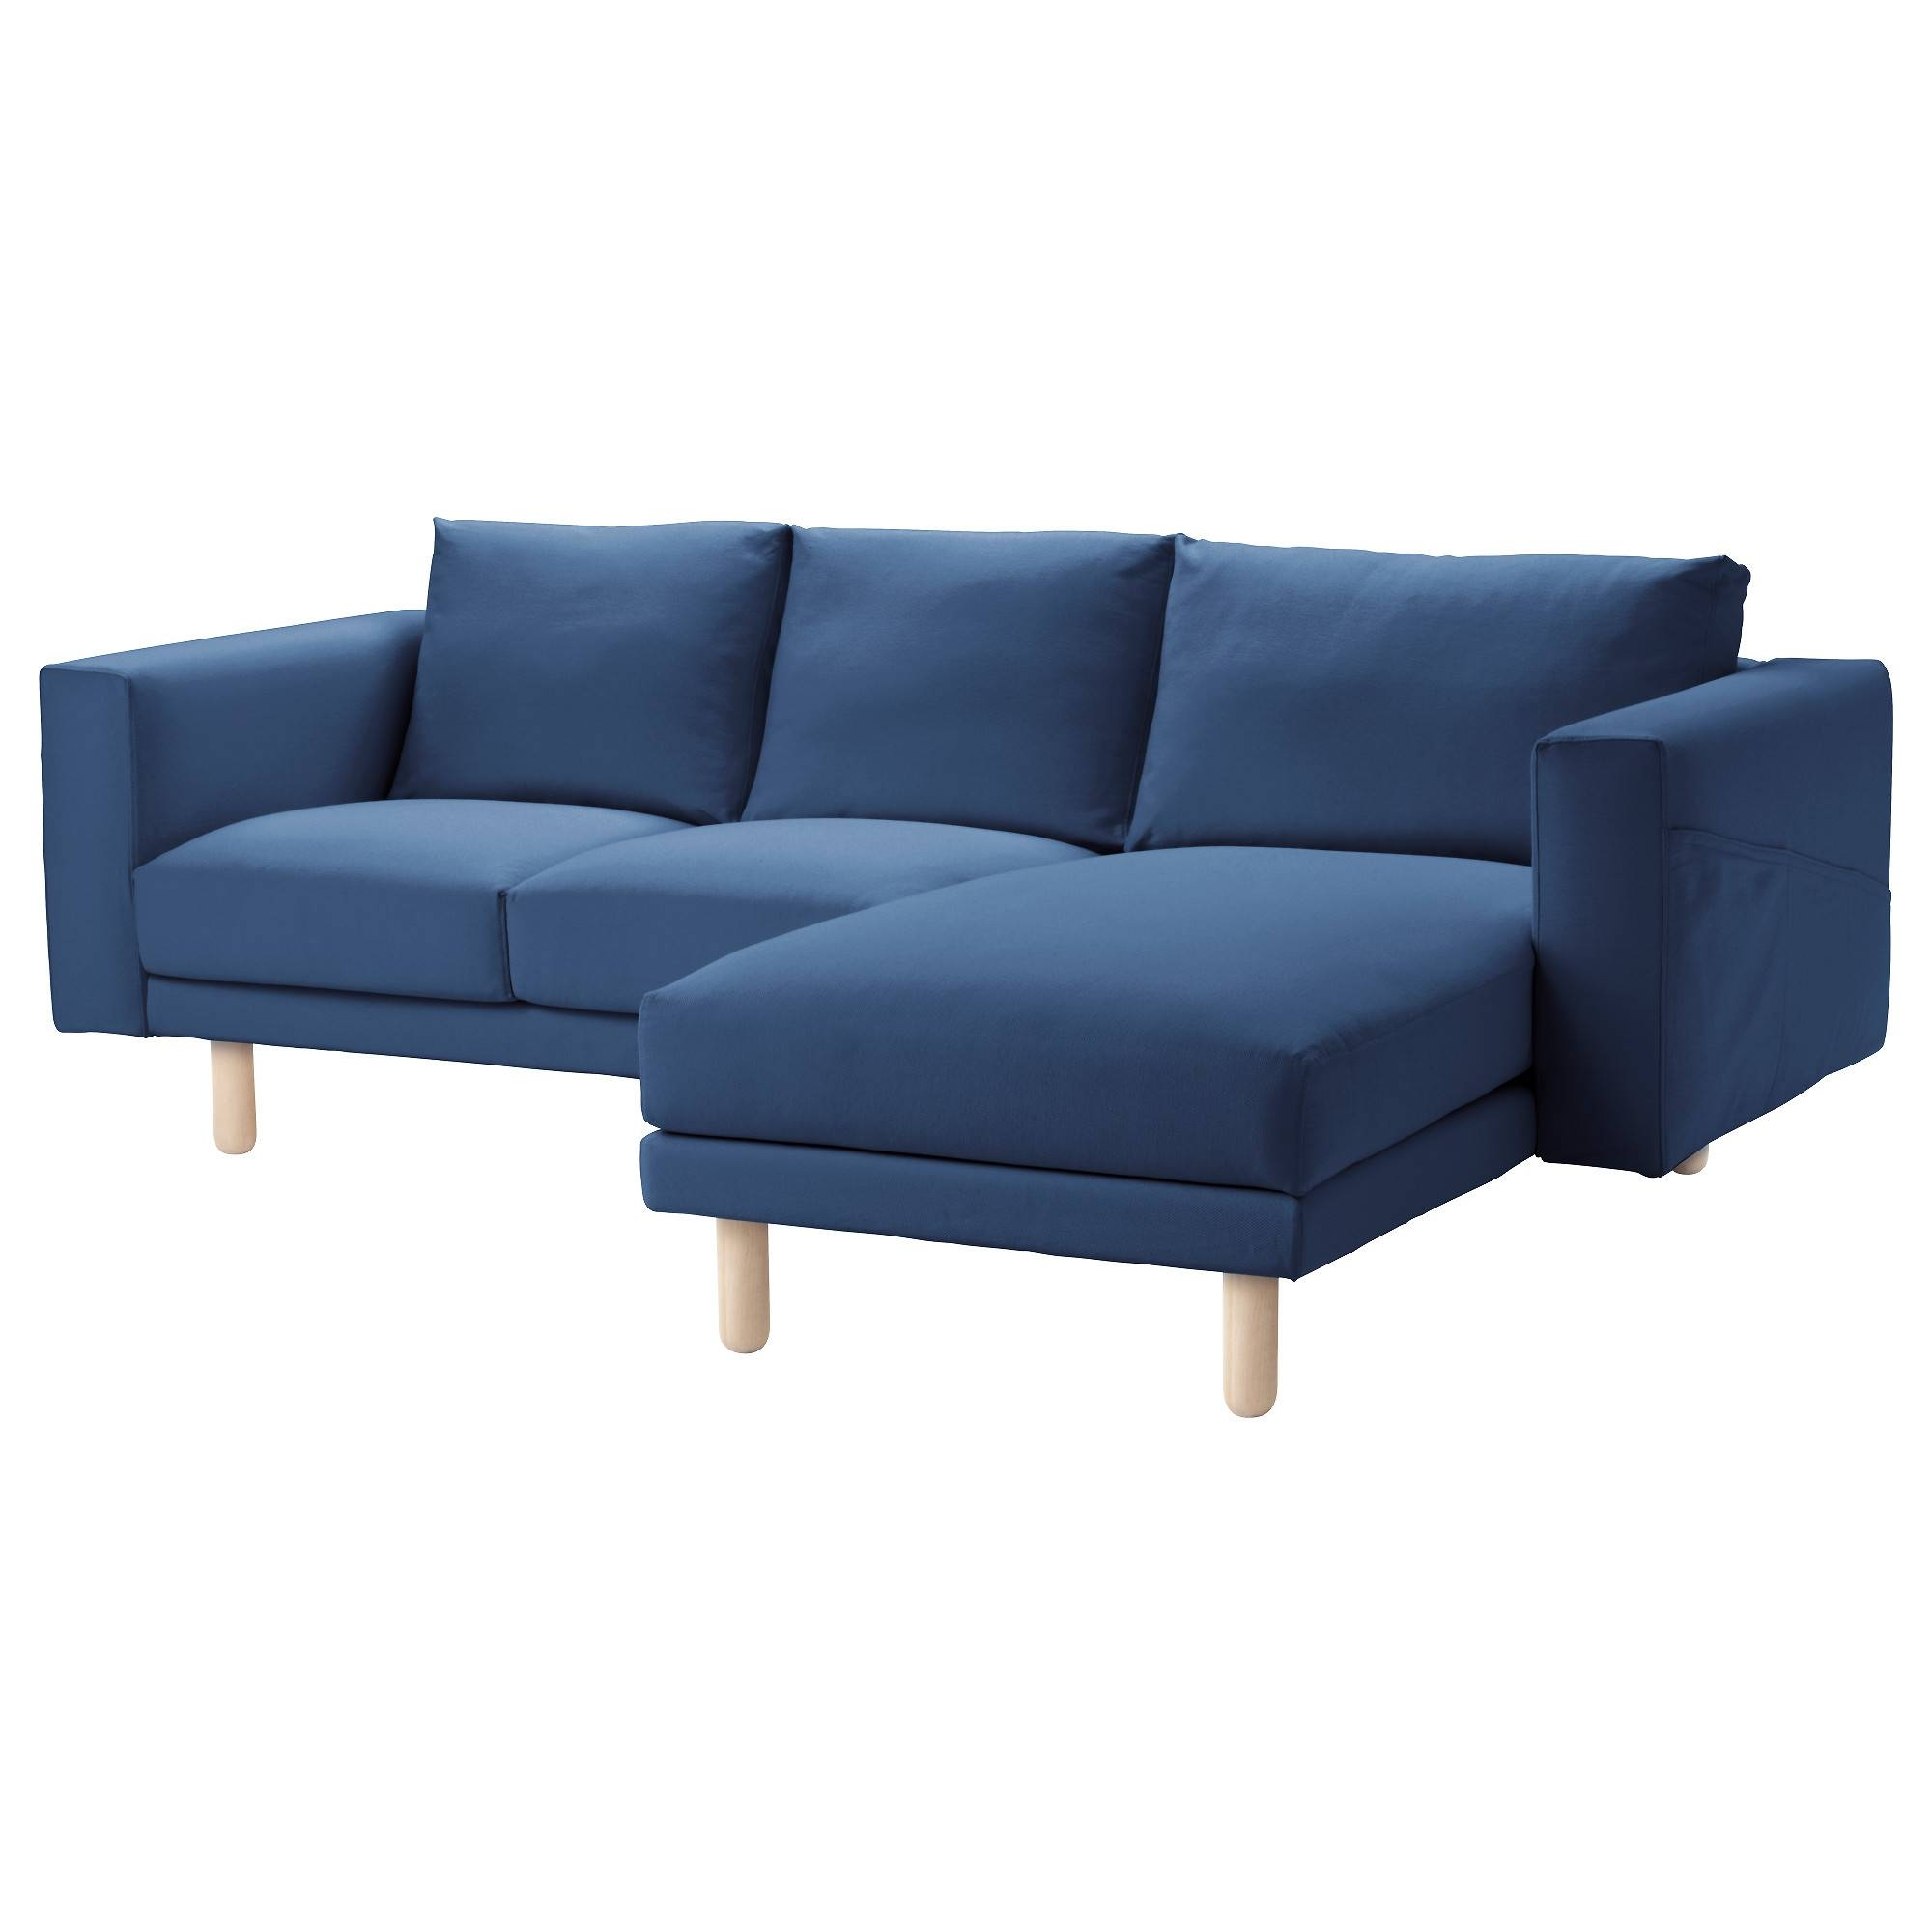 Norsborg Two-Seat Sofa With Chaise Longue Gräsbo Dark Blue/birch inside Sofas With Chaise Longue (Image 21 of 30)